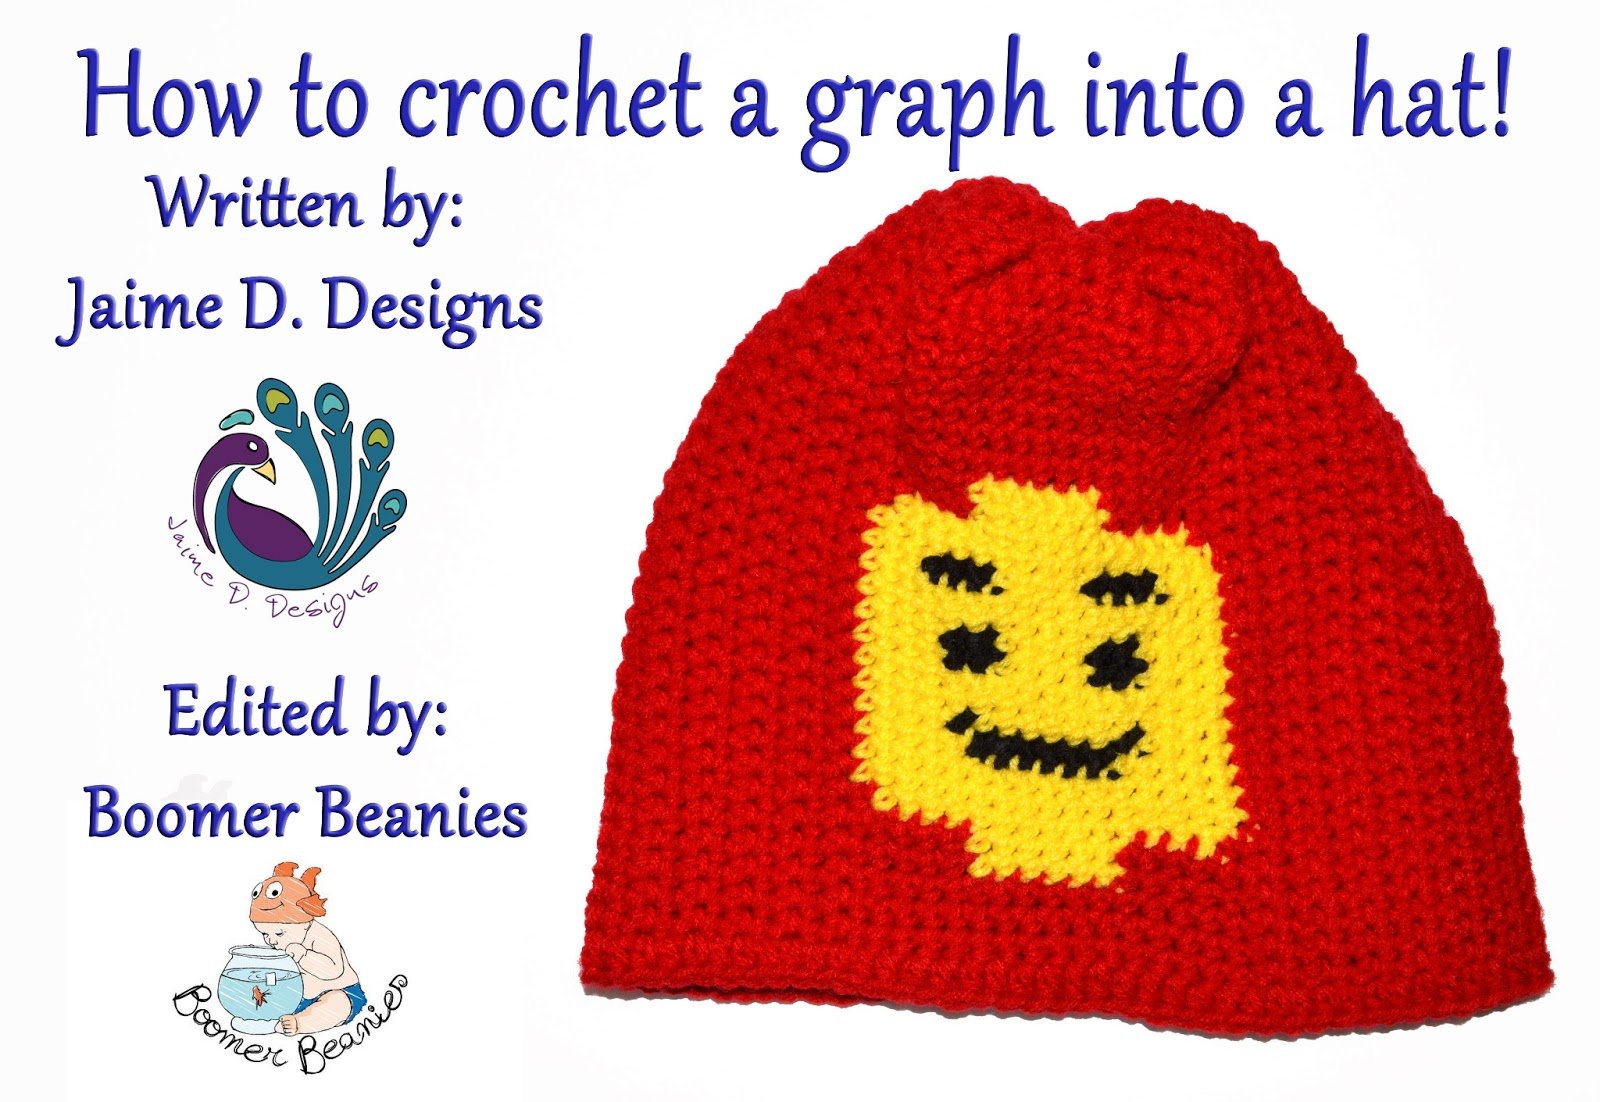 Jaime D. Designs: How to crochet a graph into a hat!